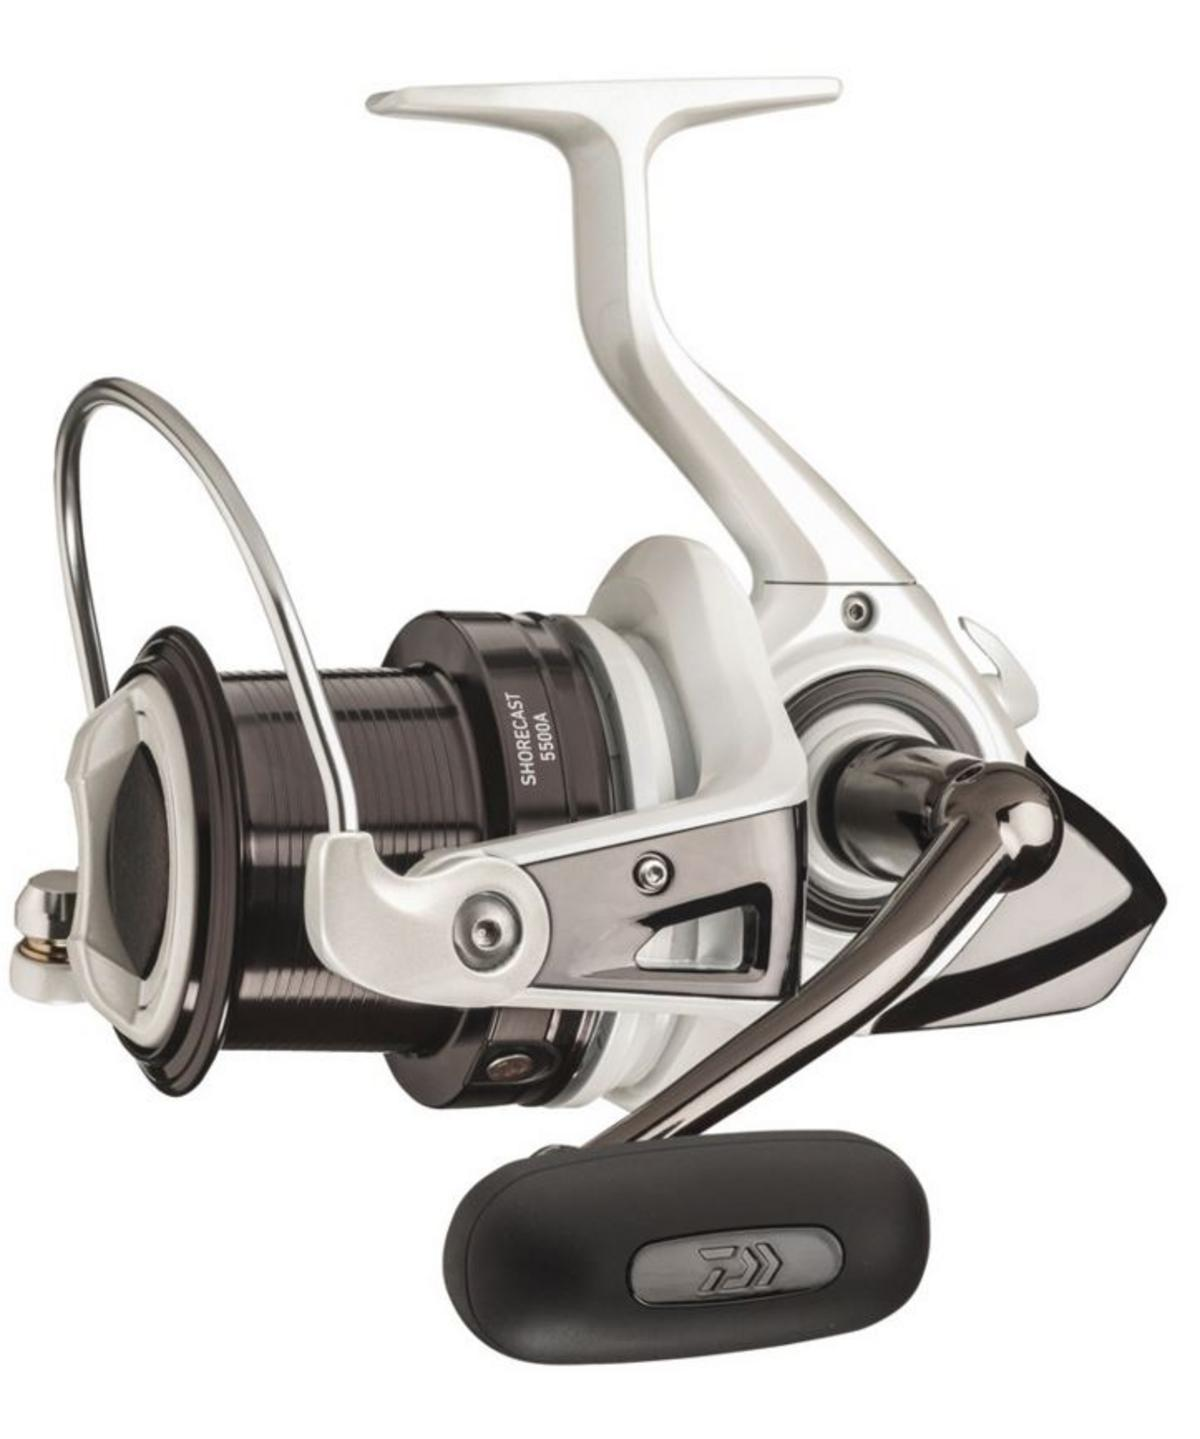 DAIWA SHORECAST SURF FISHING REEL 4500A, 5000A, 5500A, 6000A ALL MODELS